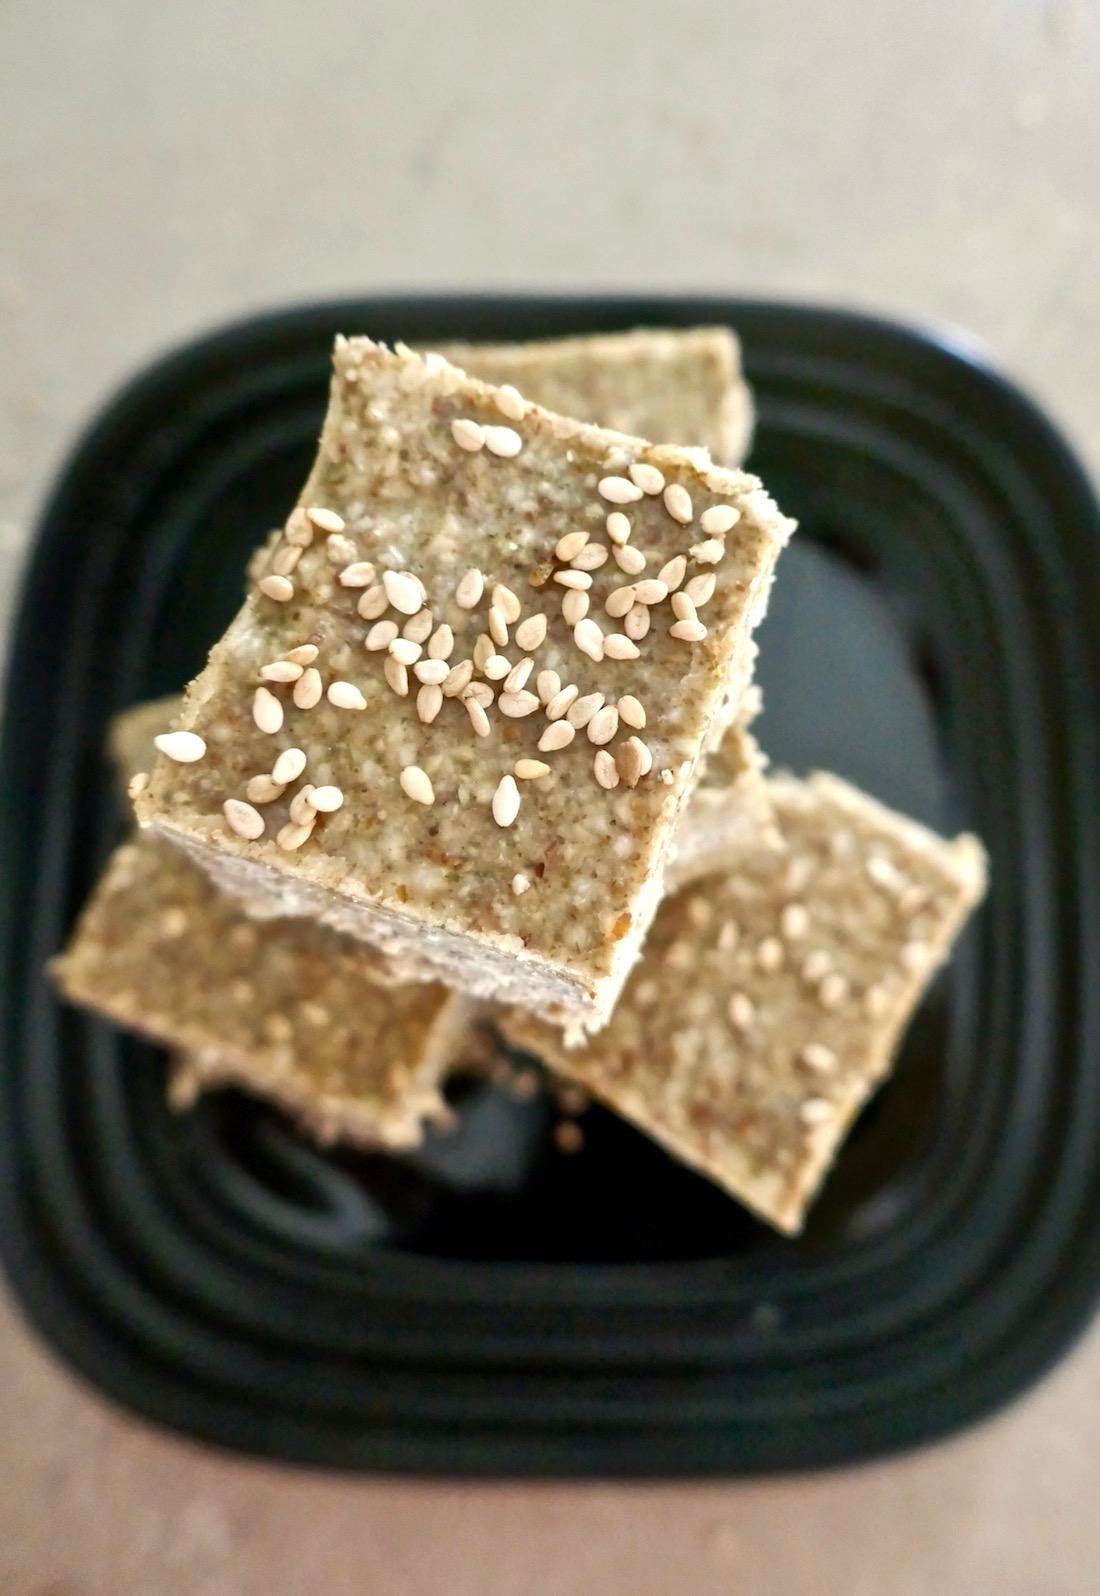 Nut and grain free seed bars